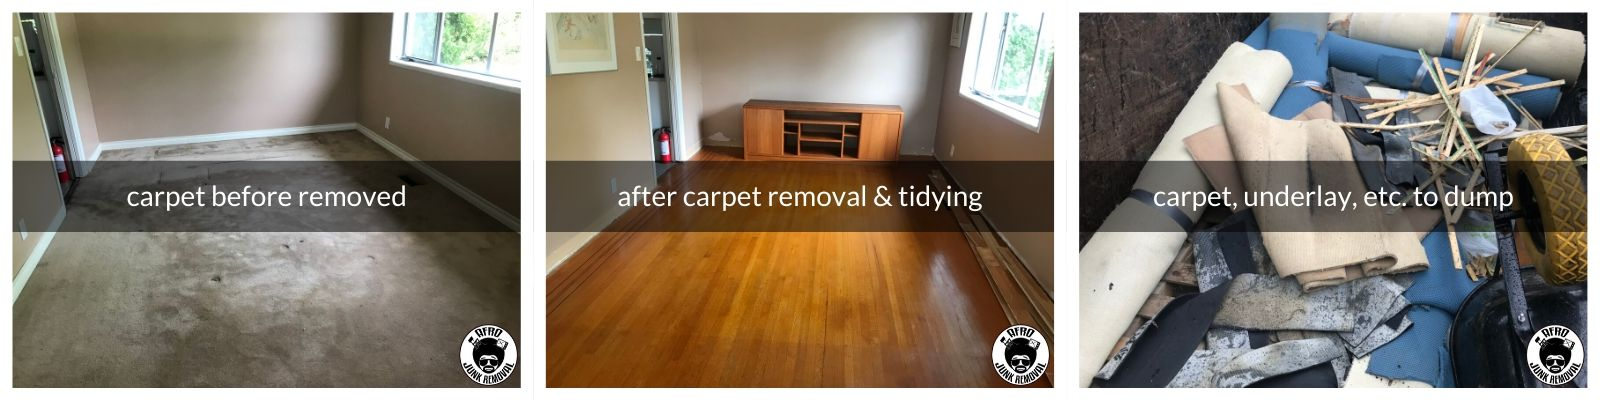 Carpet Removal, Tidy Up and Disposal Job by Afro Junk Removal